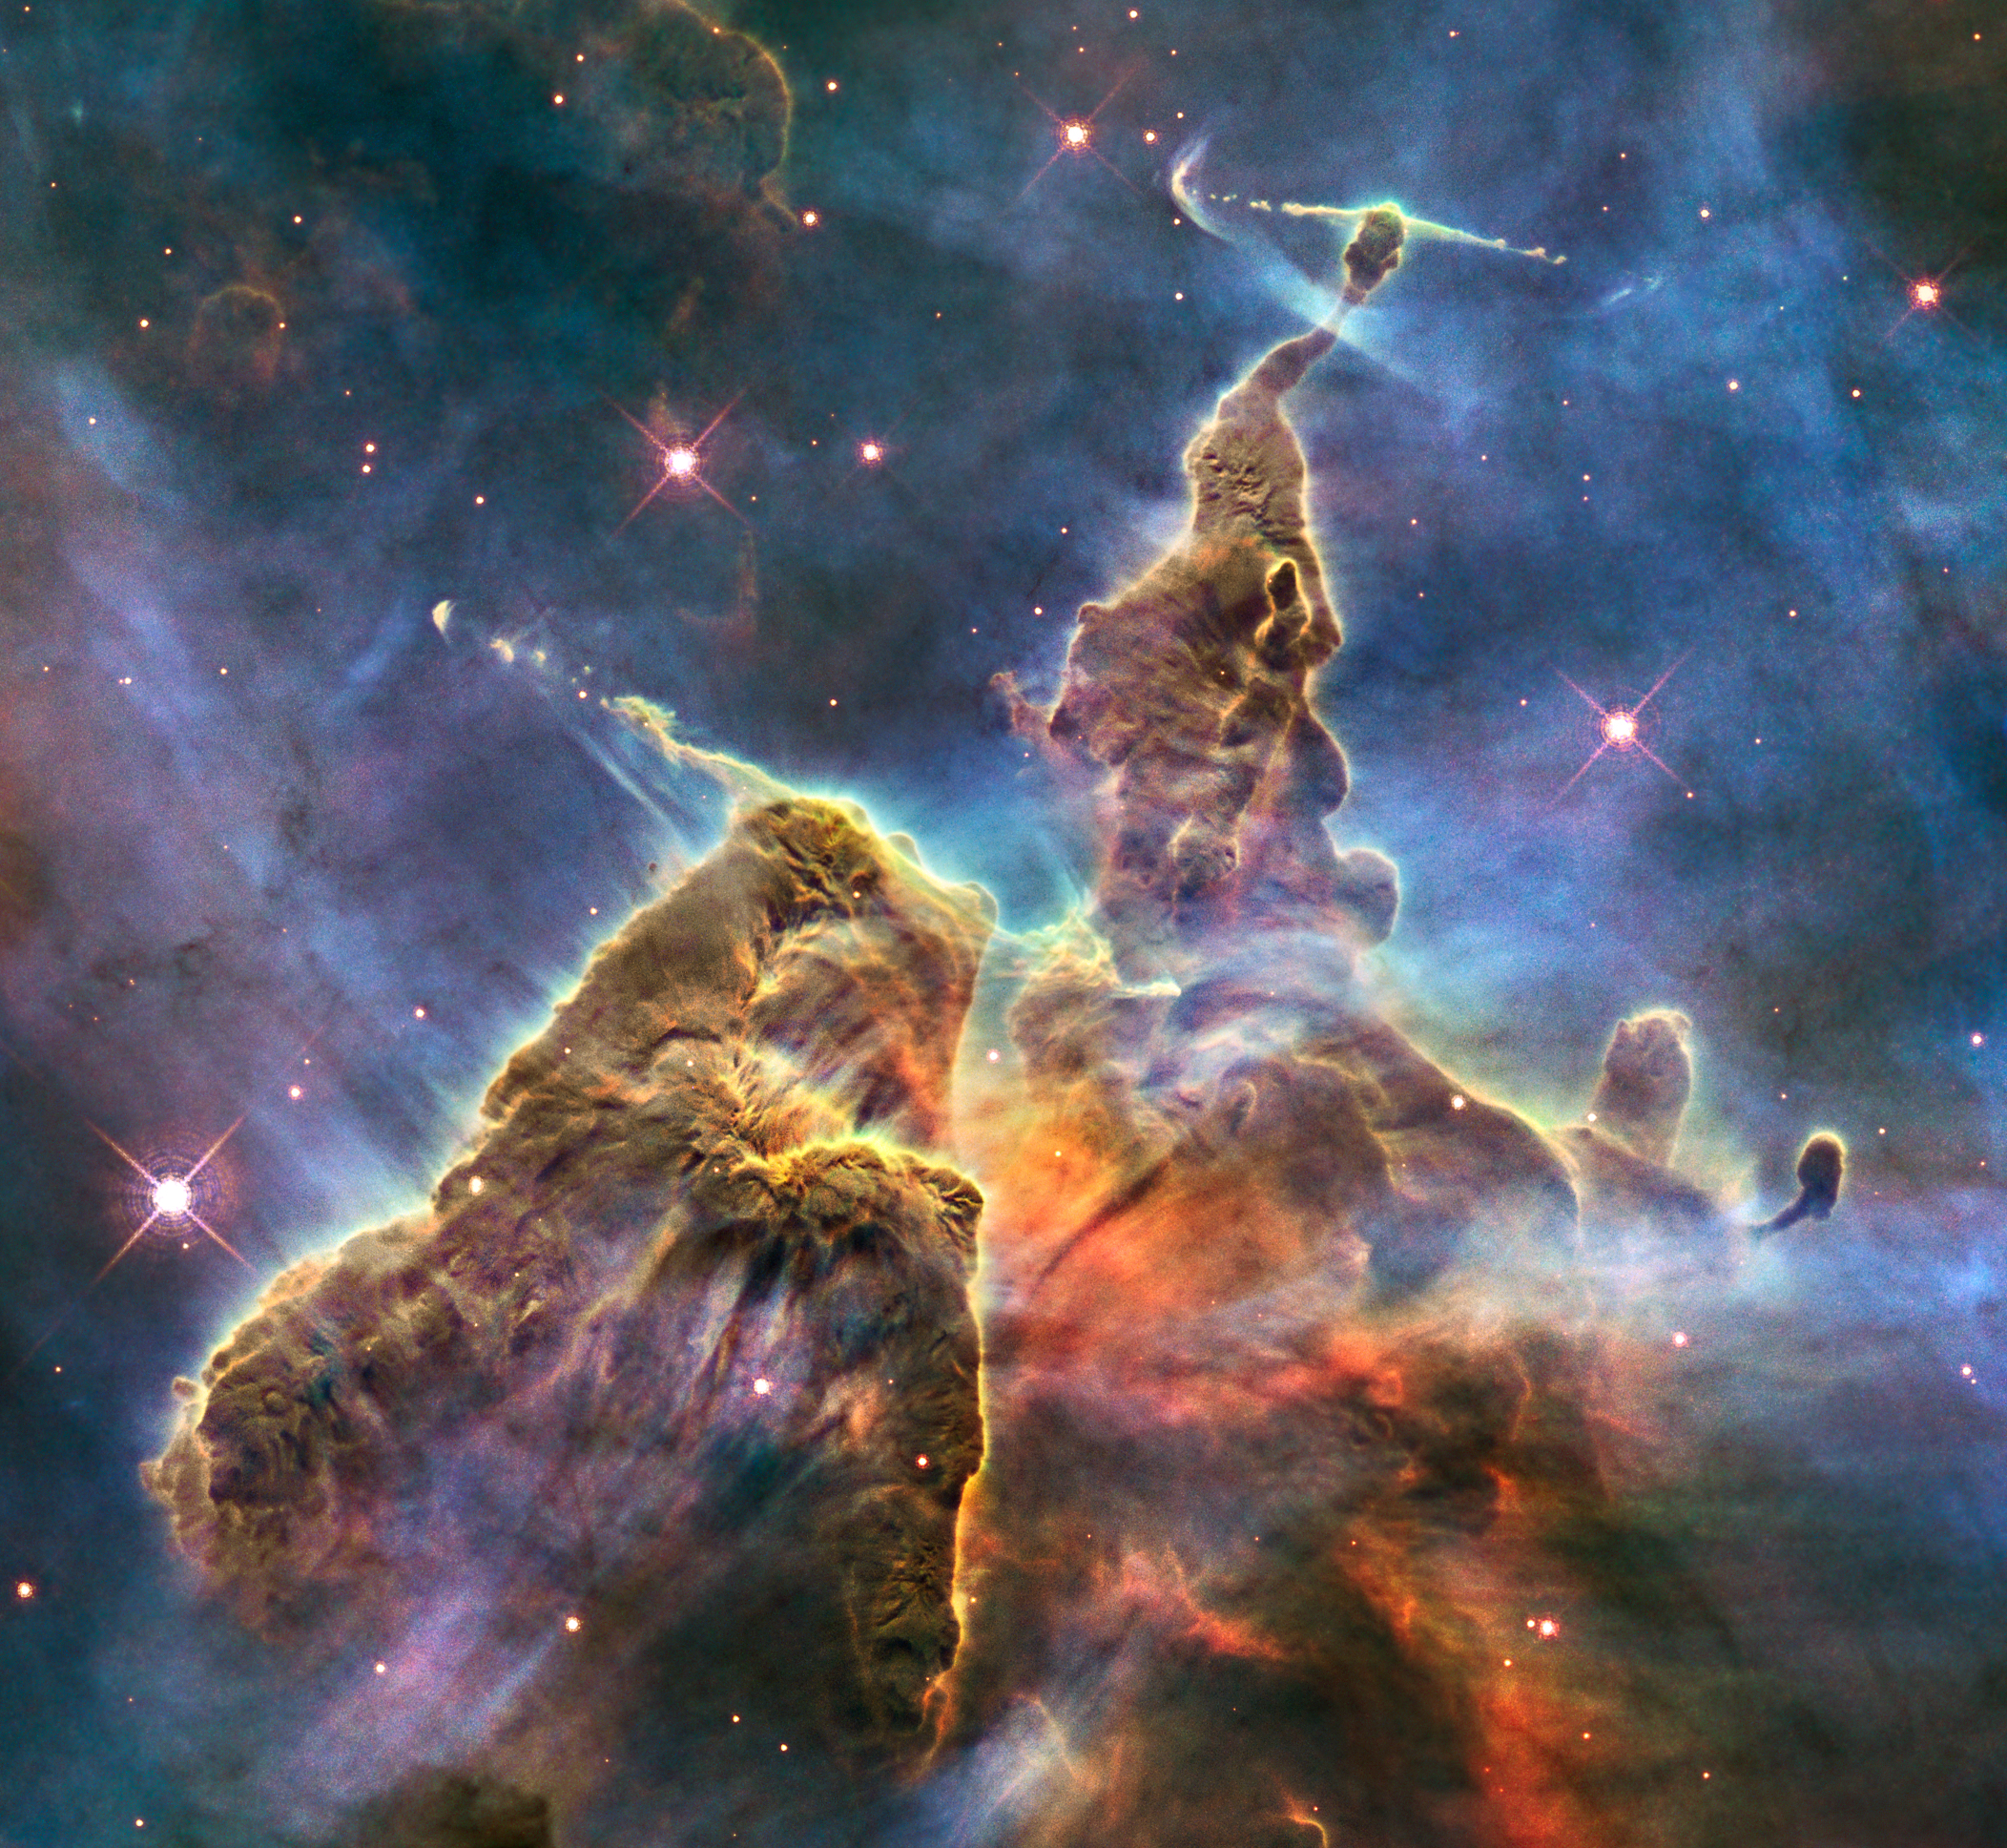 HH_901_and_HH_902_in_the_Carina_nebula_(captured_by_the_Hubble_Space_Telescope)